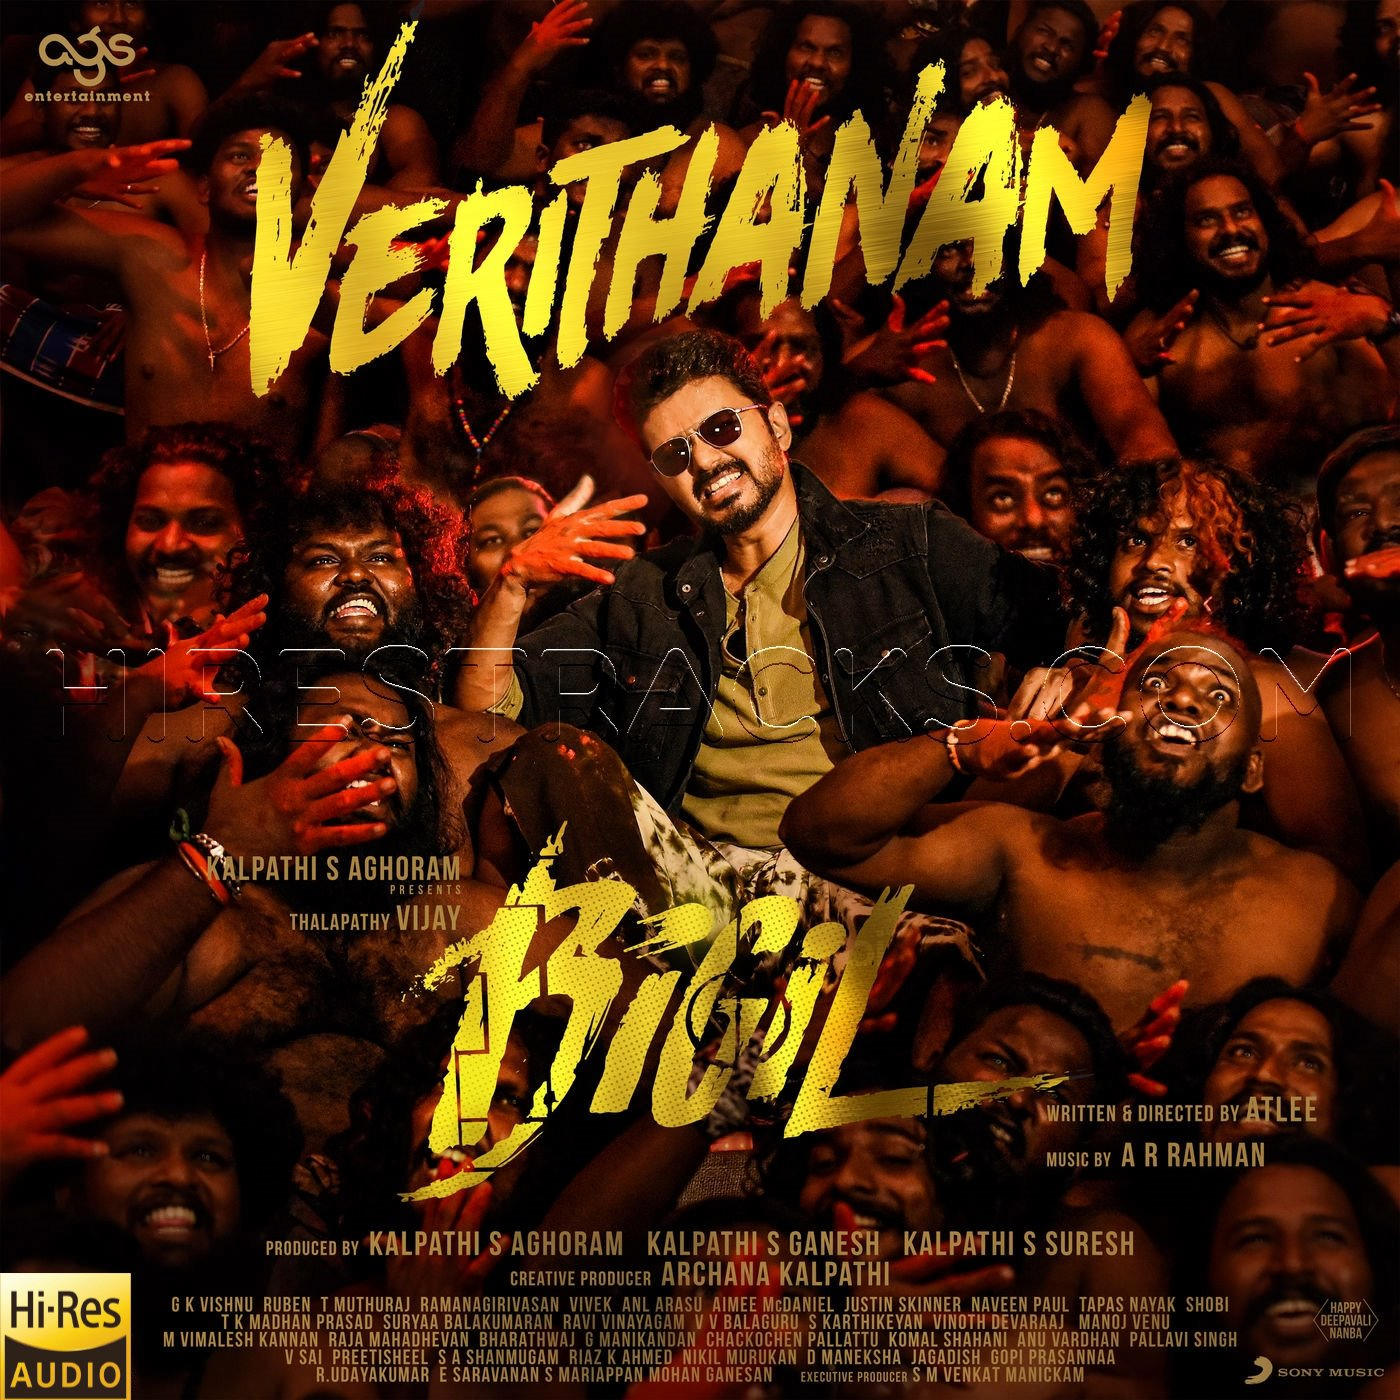 Verithanam (From Bigil) (2019) (A.R. Rahman) (Sony Music) [24 BIT – 48 KHZ] [Digital-DL-FLAC & WAV]